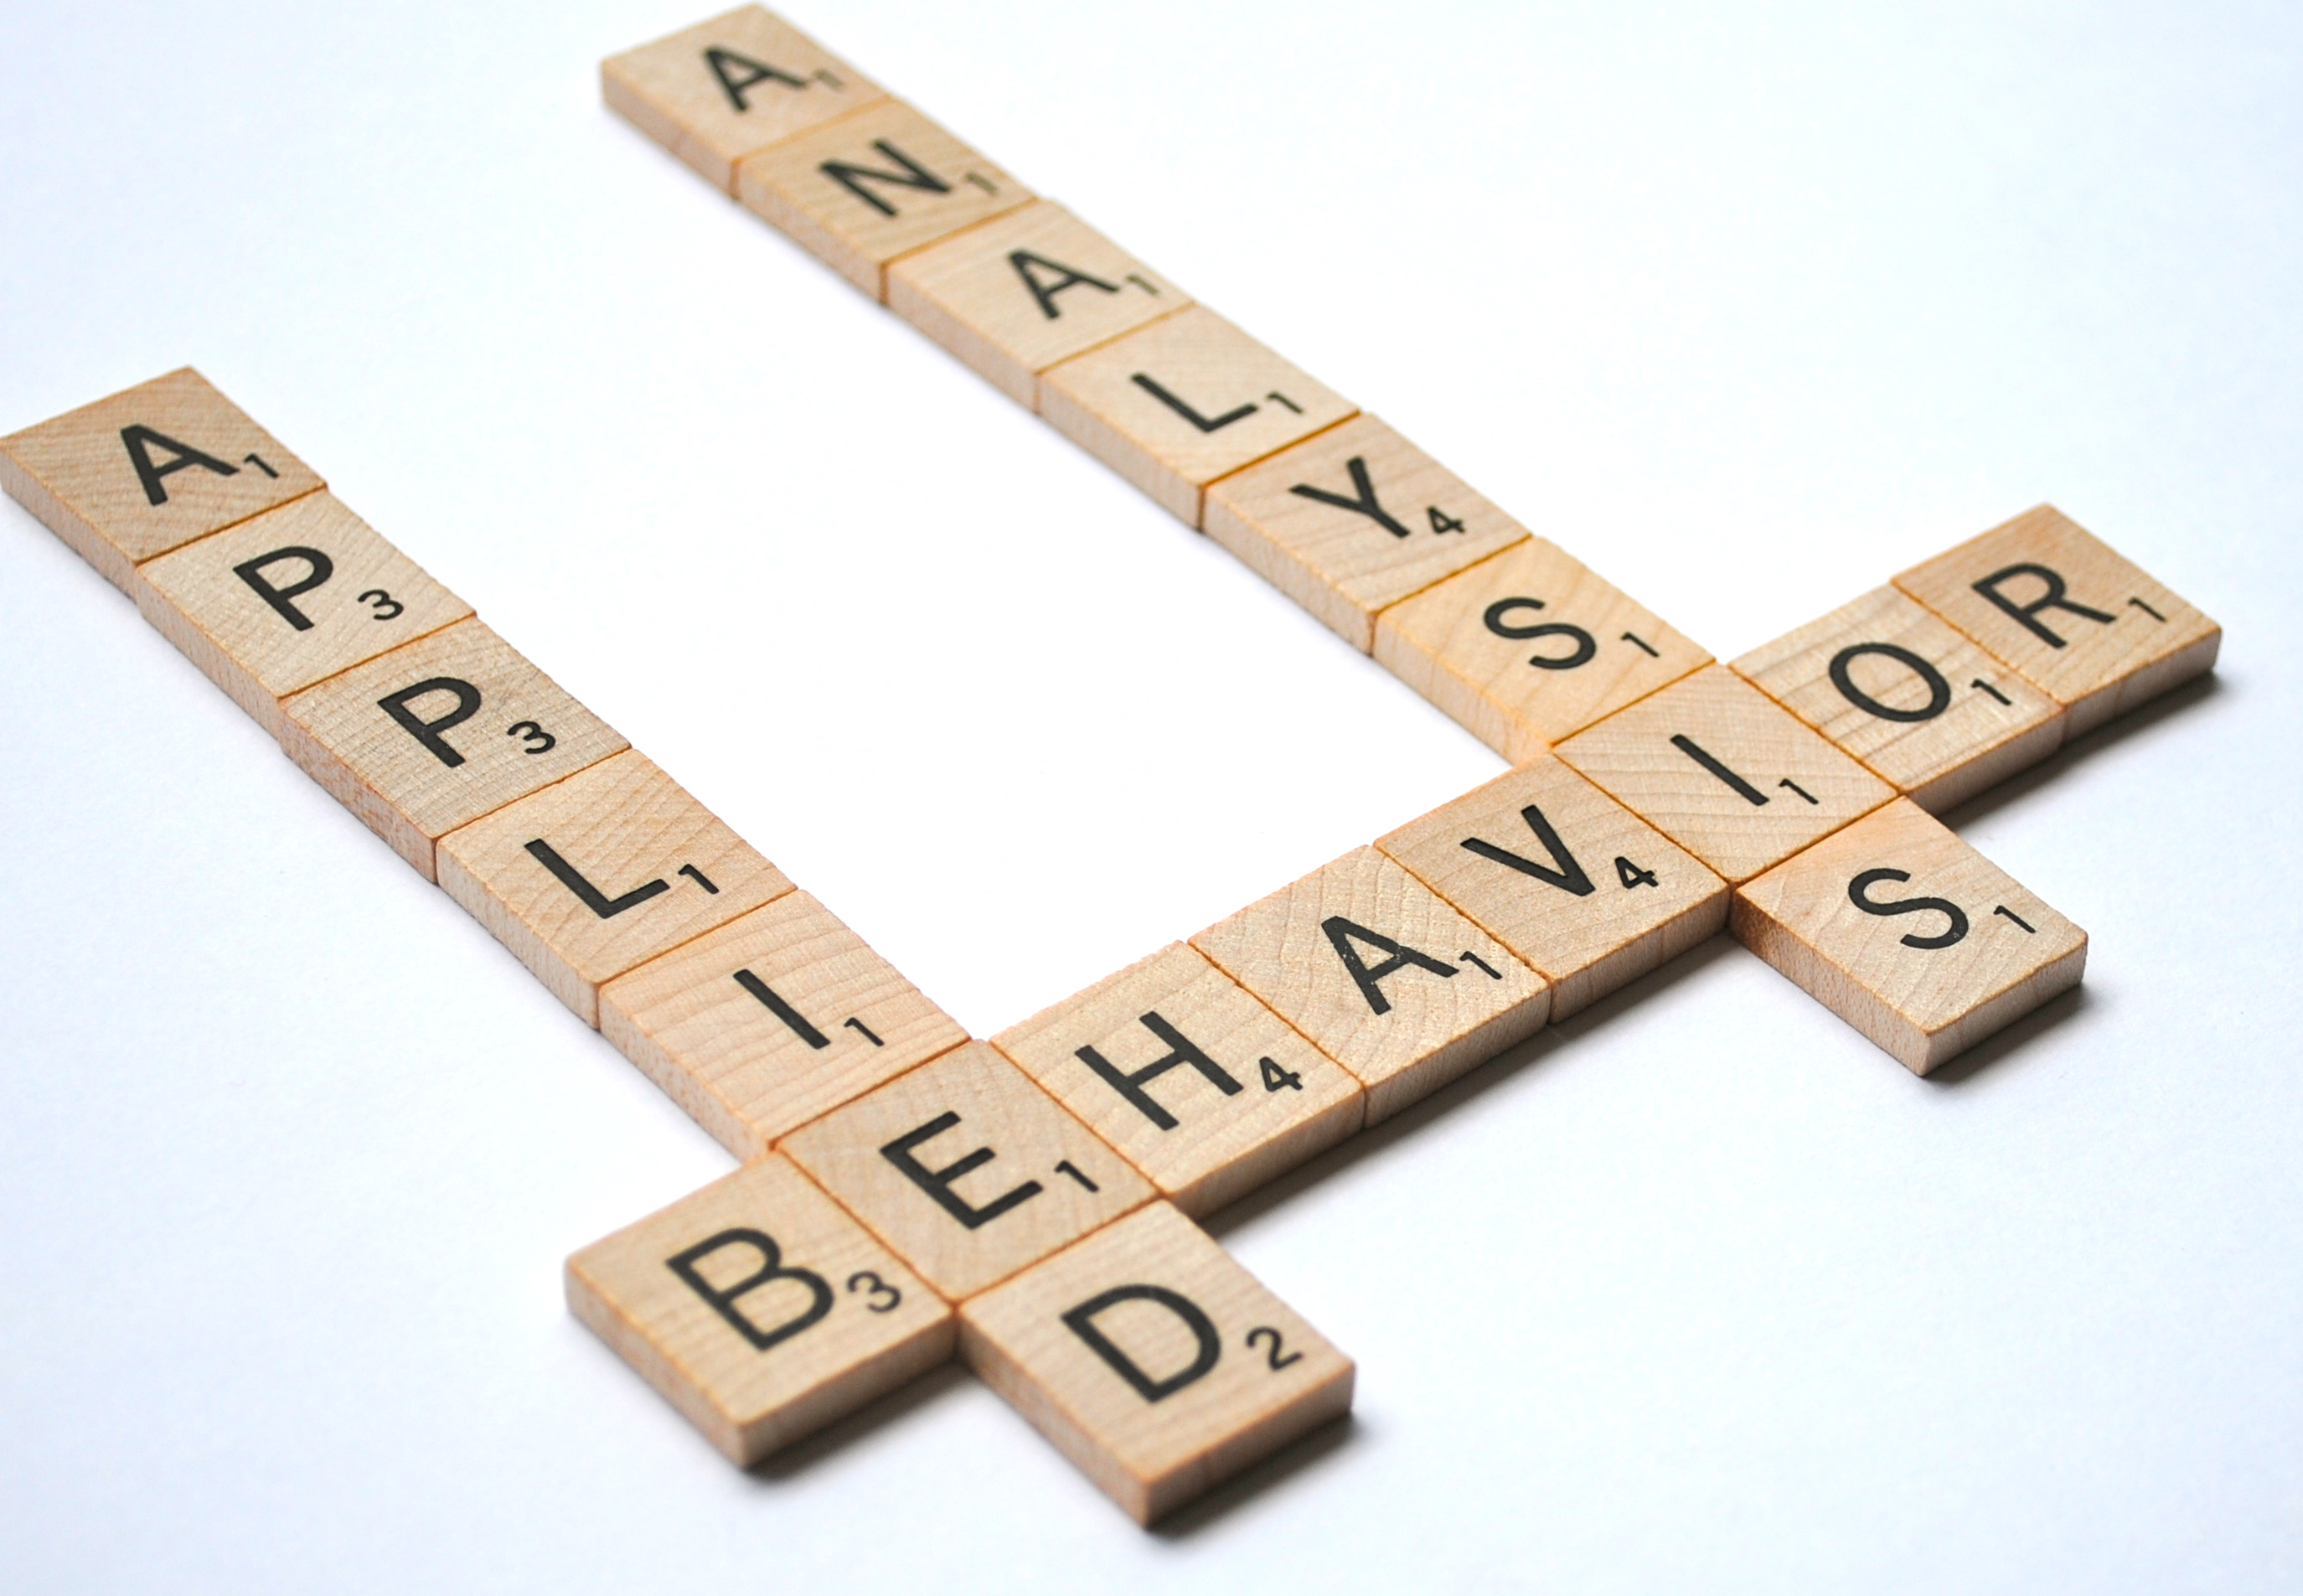 Behavior analysis its what i do simply elliott in this stage of life we always meet new people and are asked the lovely question what do you do normally when i respond there is generally some sort 1betcityfo Gallery